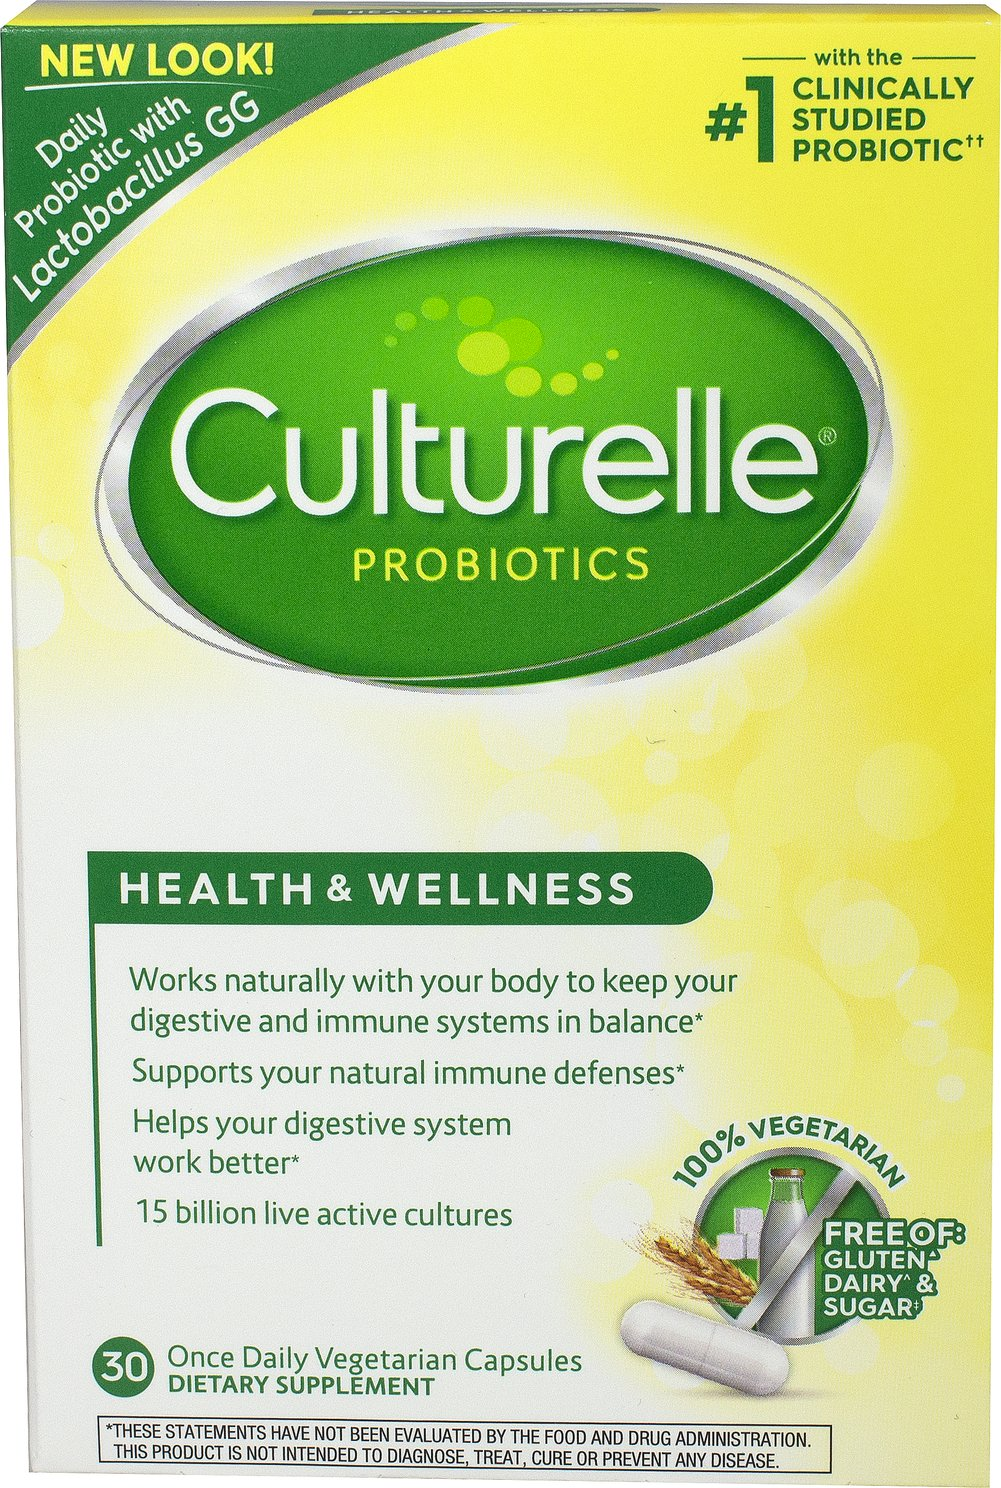 Culturelle® Probiotic <p><strong>From the Manufacturer's Label: </strong></p><p>Supports your healthy immune system**</p><p>Boosts digestion and overall digestive health**</p><p>Restores the natural balance of good bacteria in your digestive tract**</p> 30 Capsules 10 billion $18.99